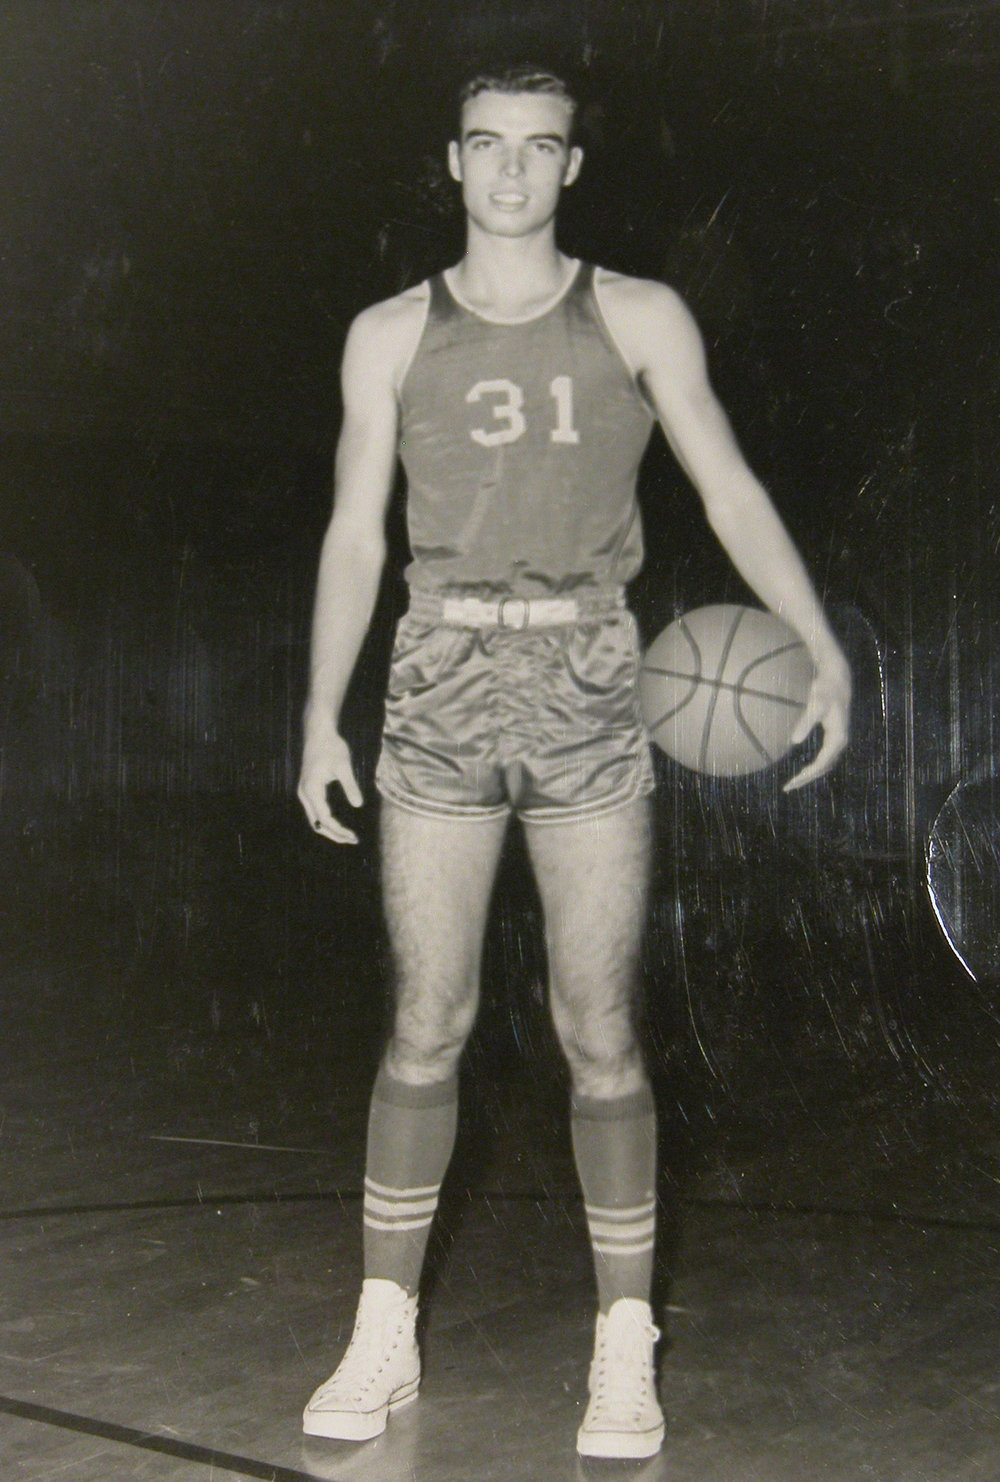 Bob McNeil - 1967 - Age 18 - Twelfth Grade - Channelview High School - Basketball Picture